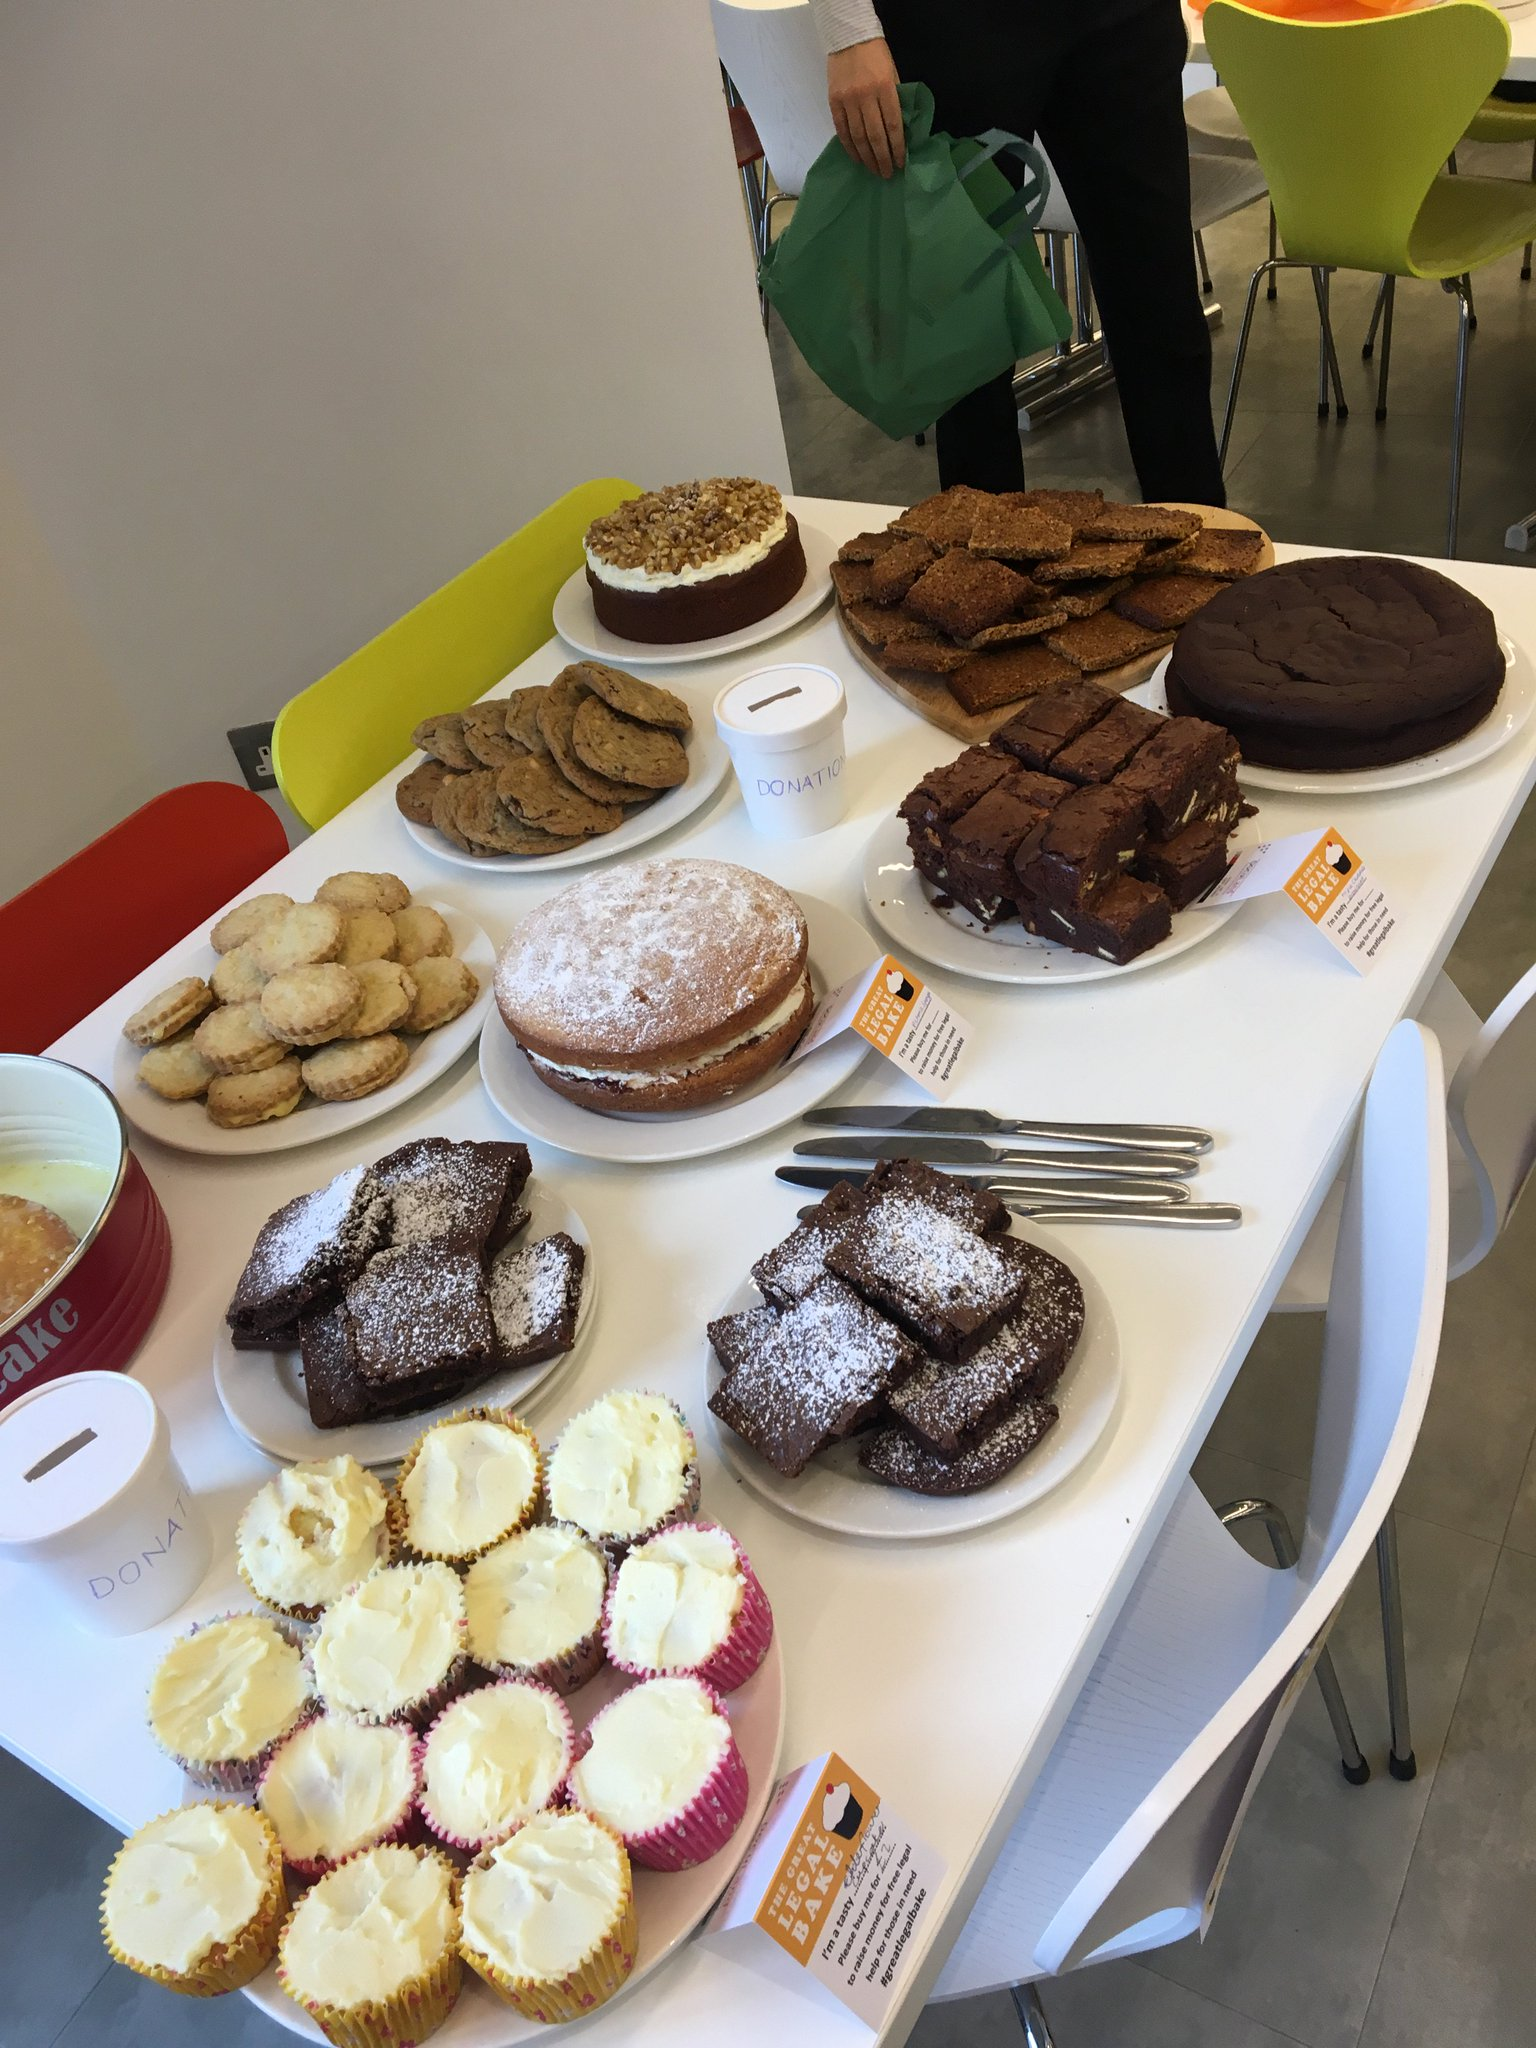 That brilliant moment when law and cake intersect @GreatLegalBake @LondonLegal @Debevoise #probono https://t.co/hEqZVW7eOO